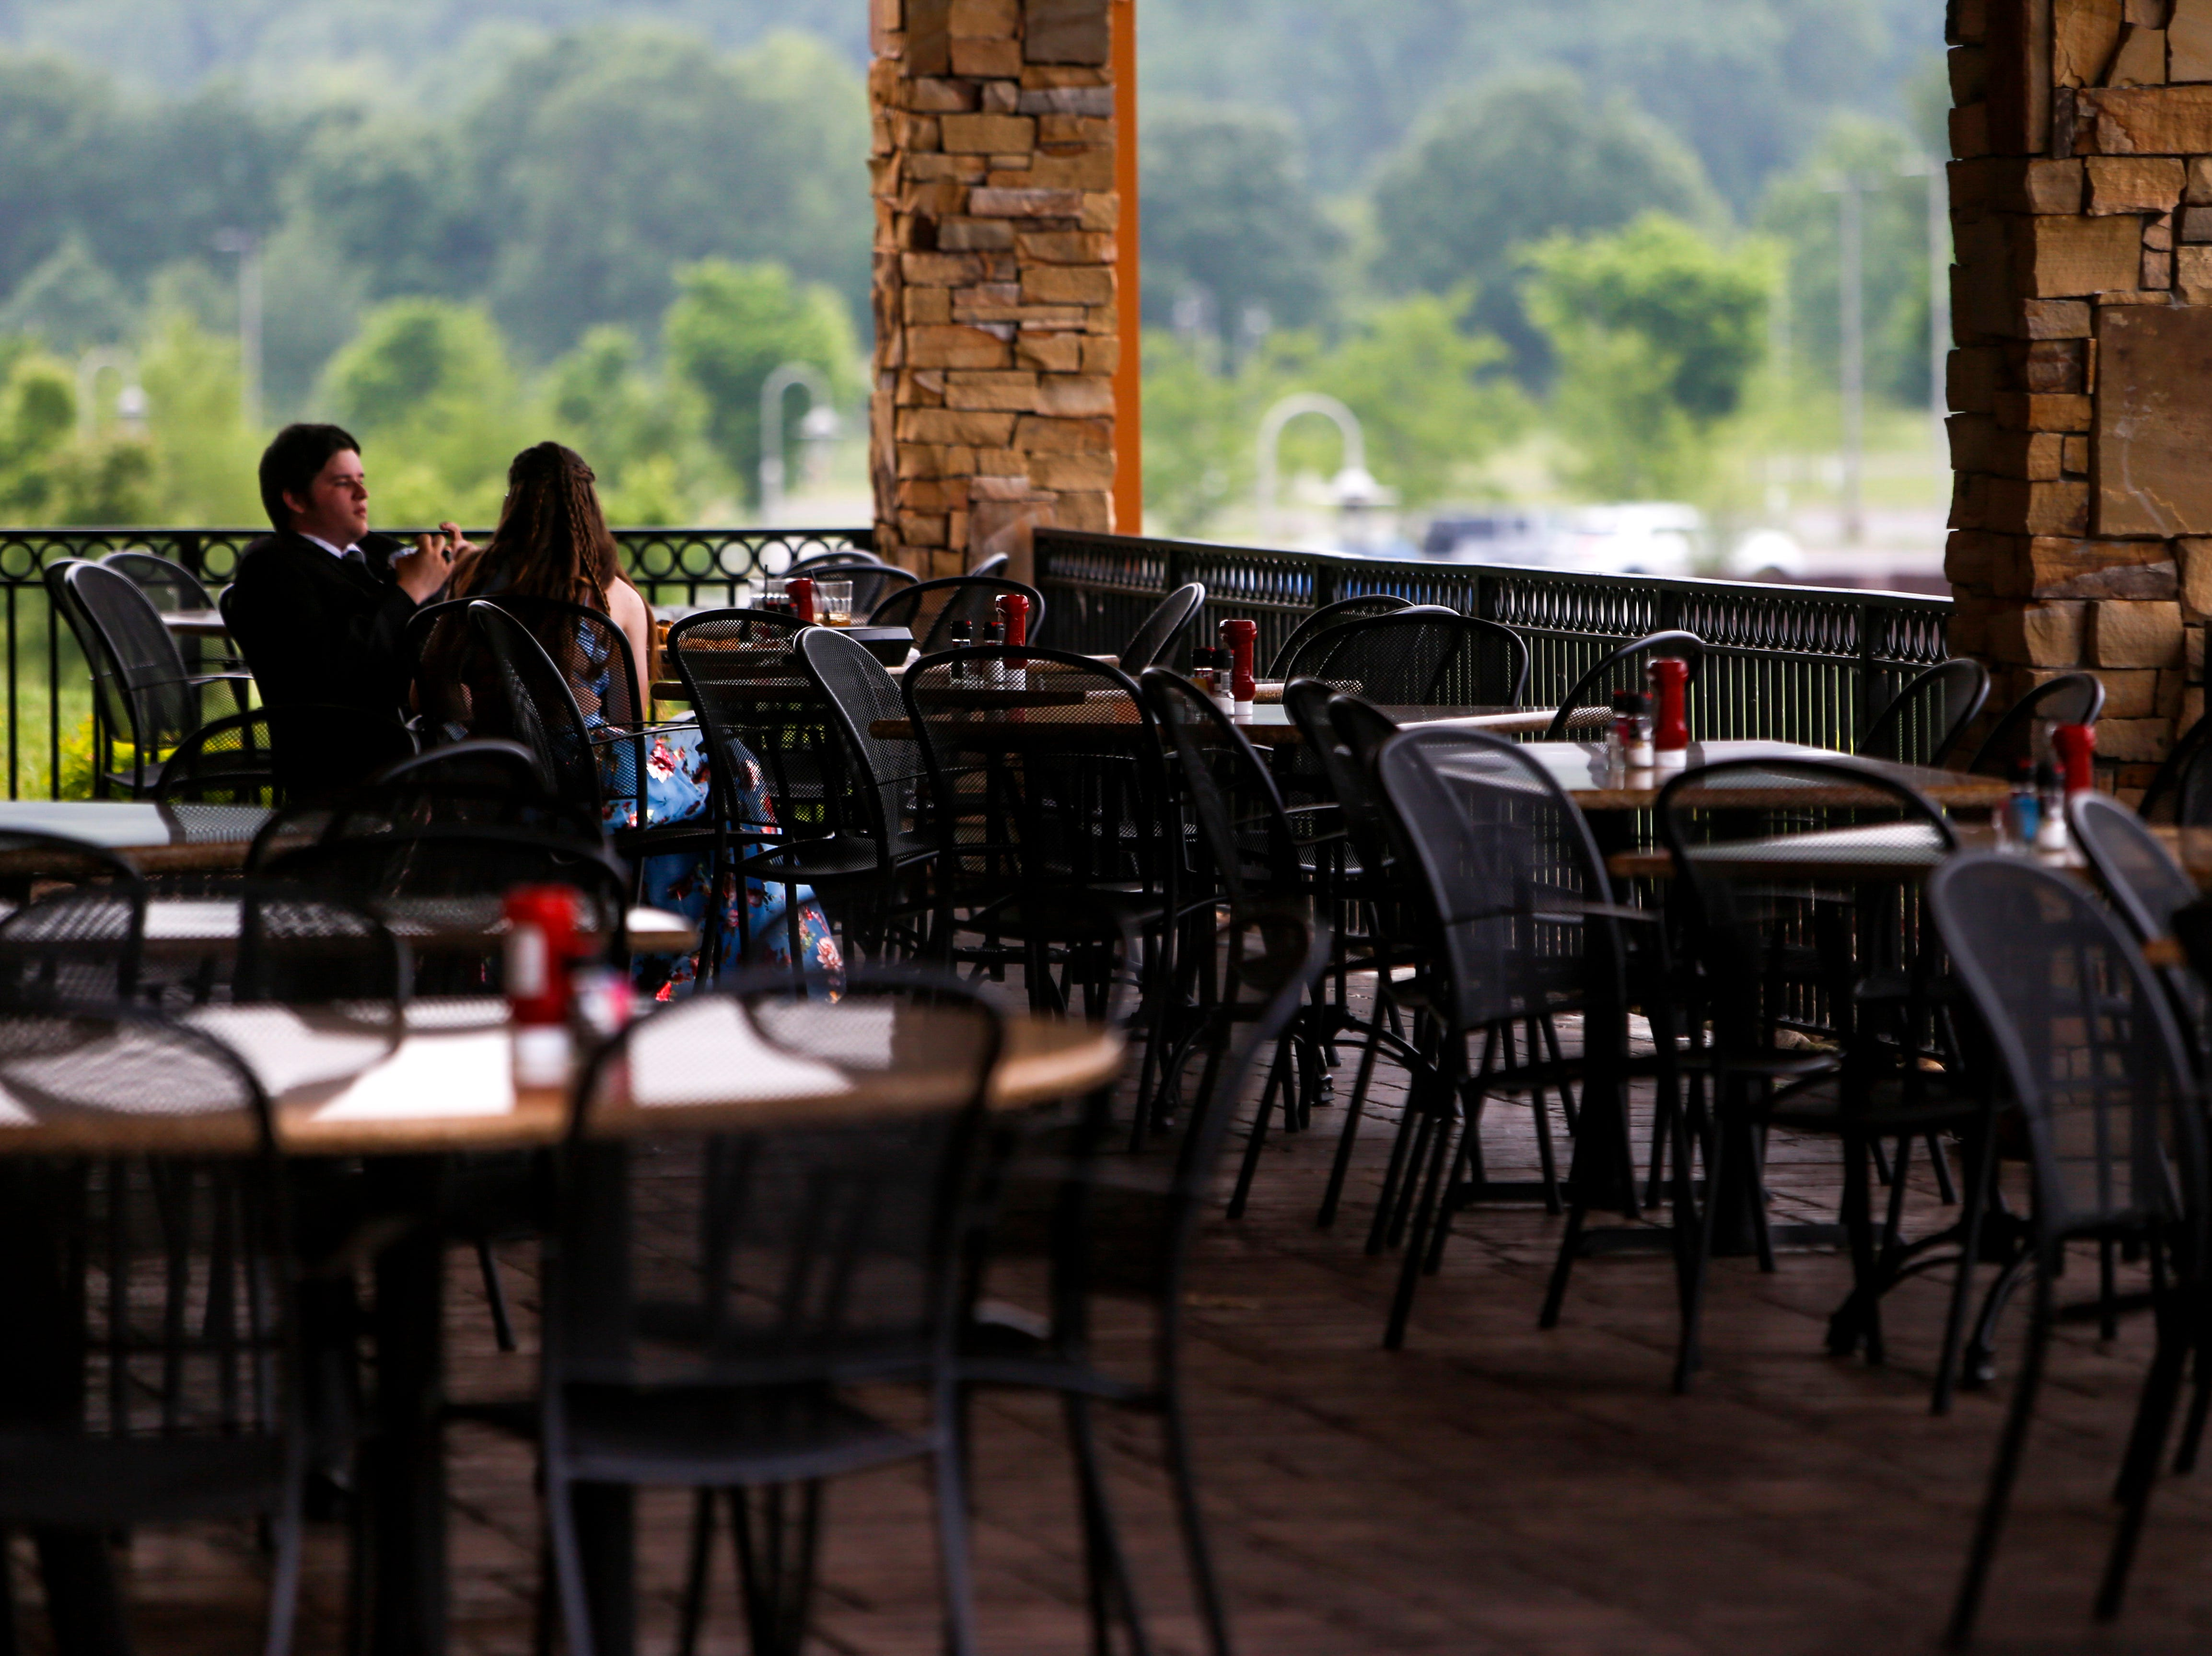 Two prom attendees have dinner at Liberty Park Grill before their night. Hundreds of seniors from Montgomery County Central High School celebrated their senior prom during a break from the weather in an otherwise rainy day at Wilma Rudolph Event Center in Clarksville, Tenn., on Saturday, May 11, 2019.